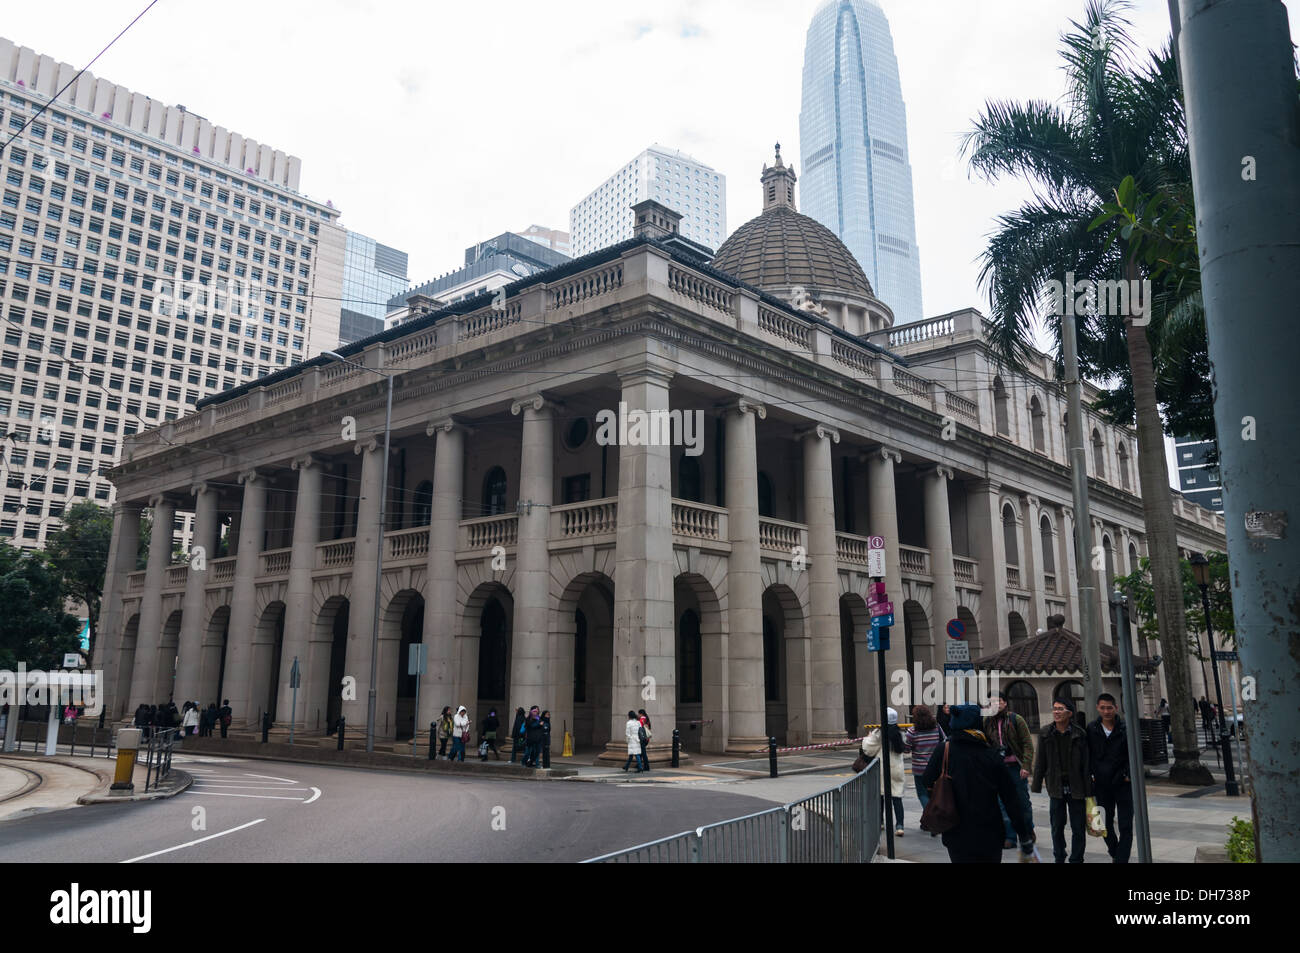 The old Legislative Council Building in Hong Kong. - Stock Image